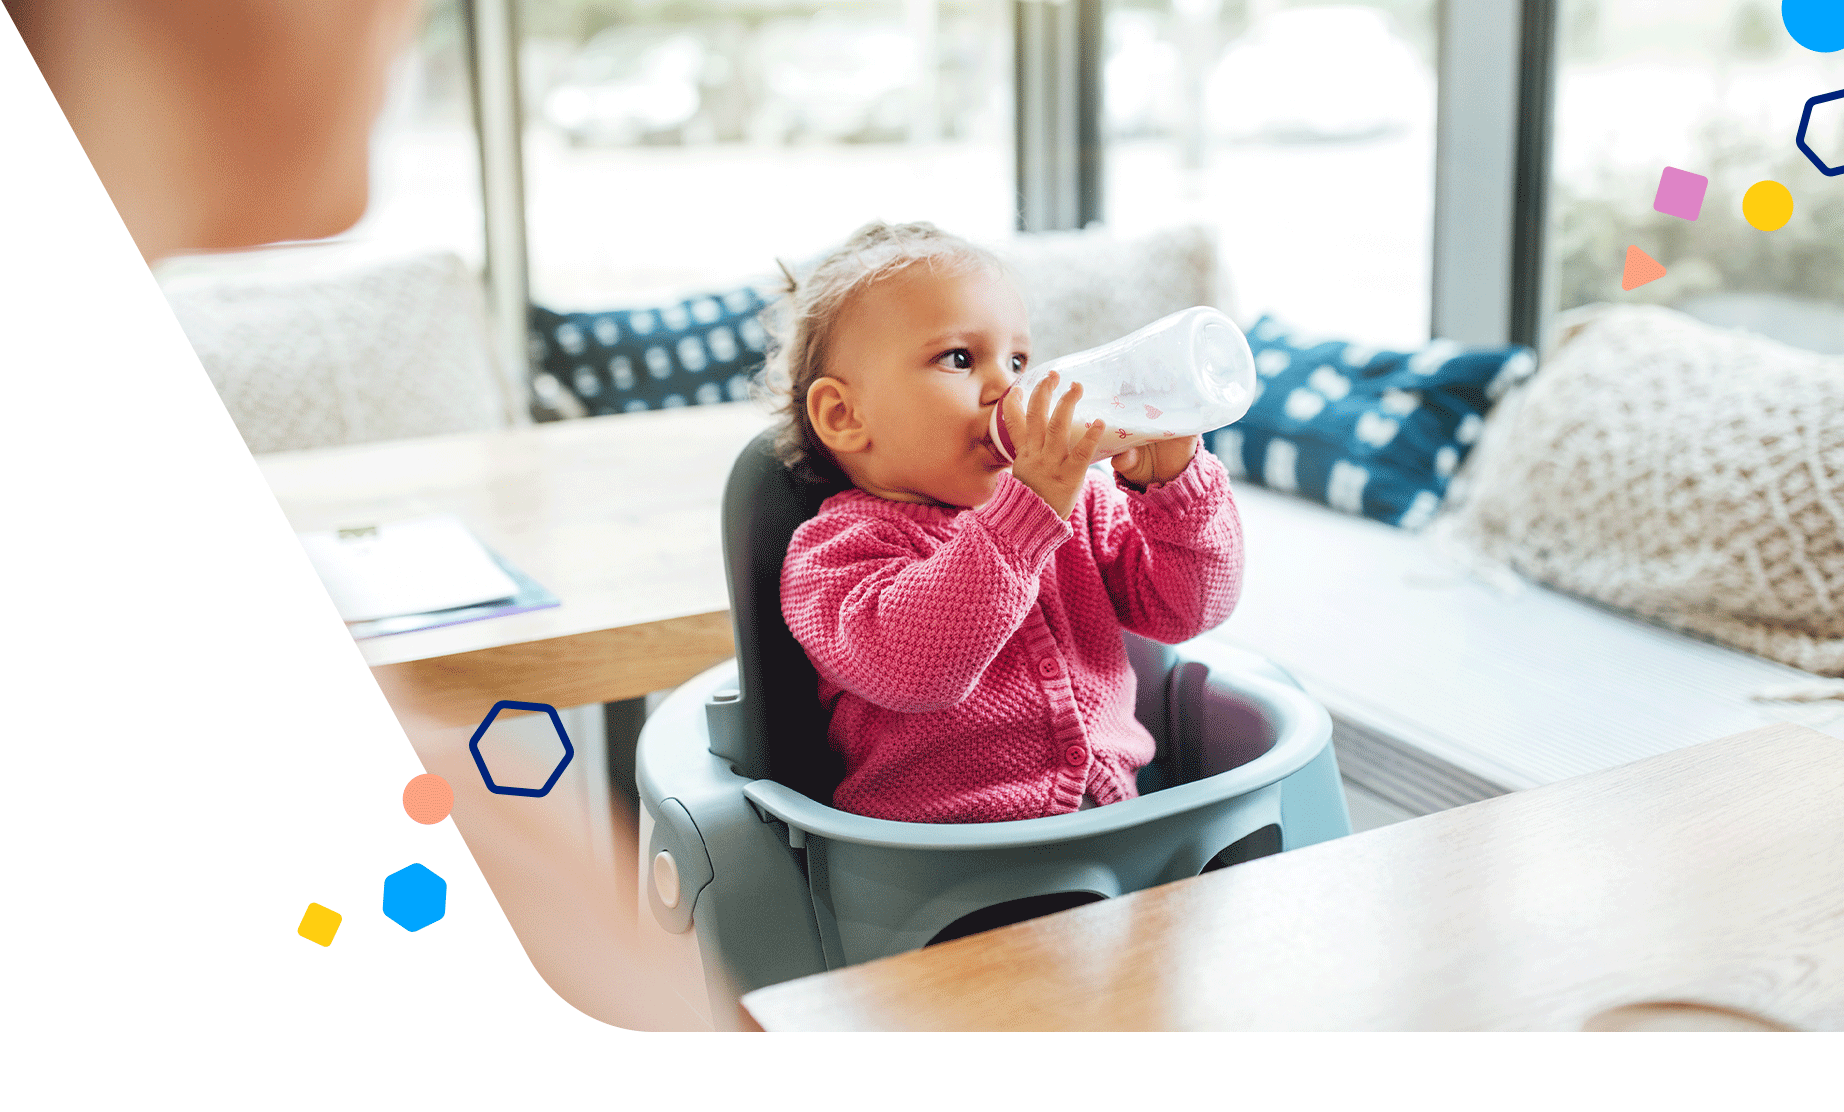 How to Tell if Your Child is Dehydrated